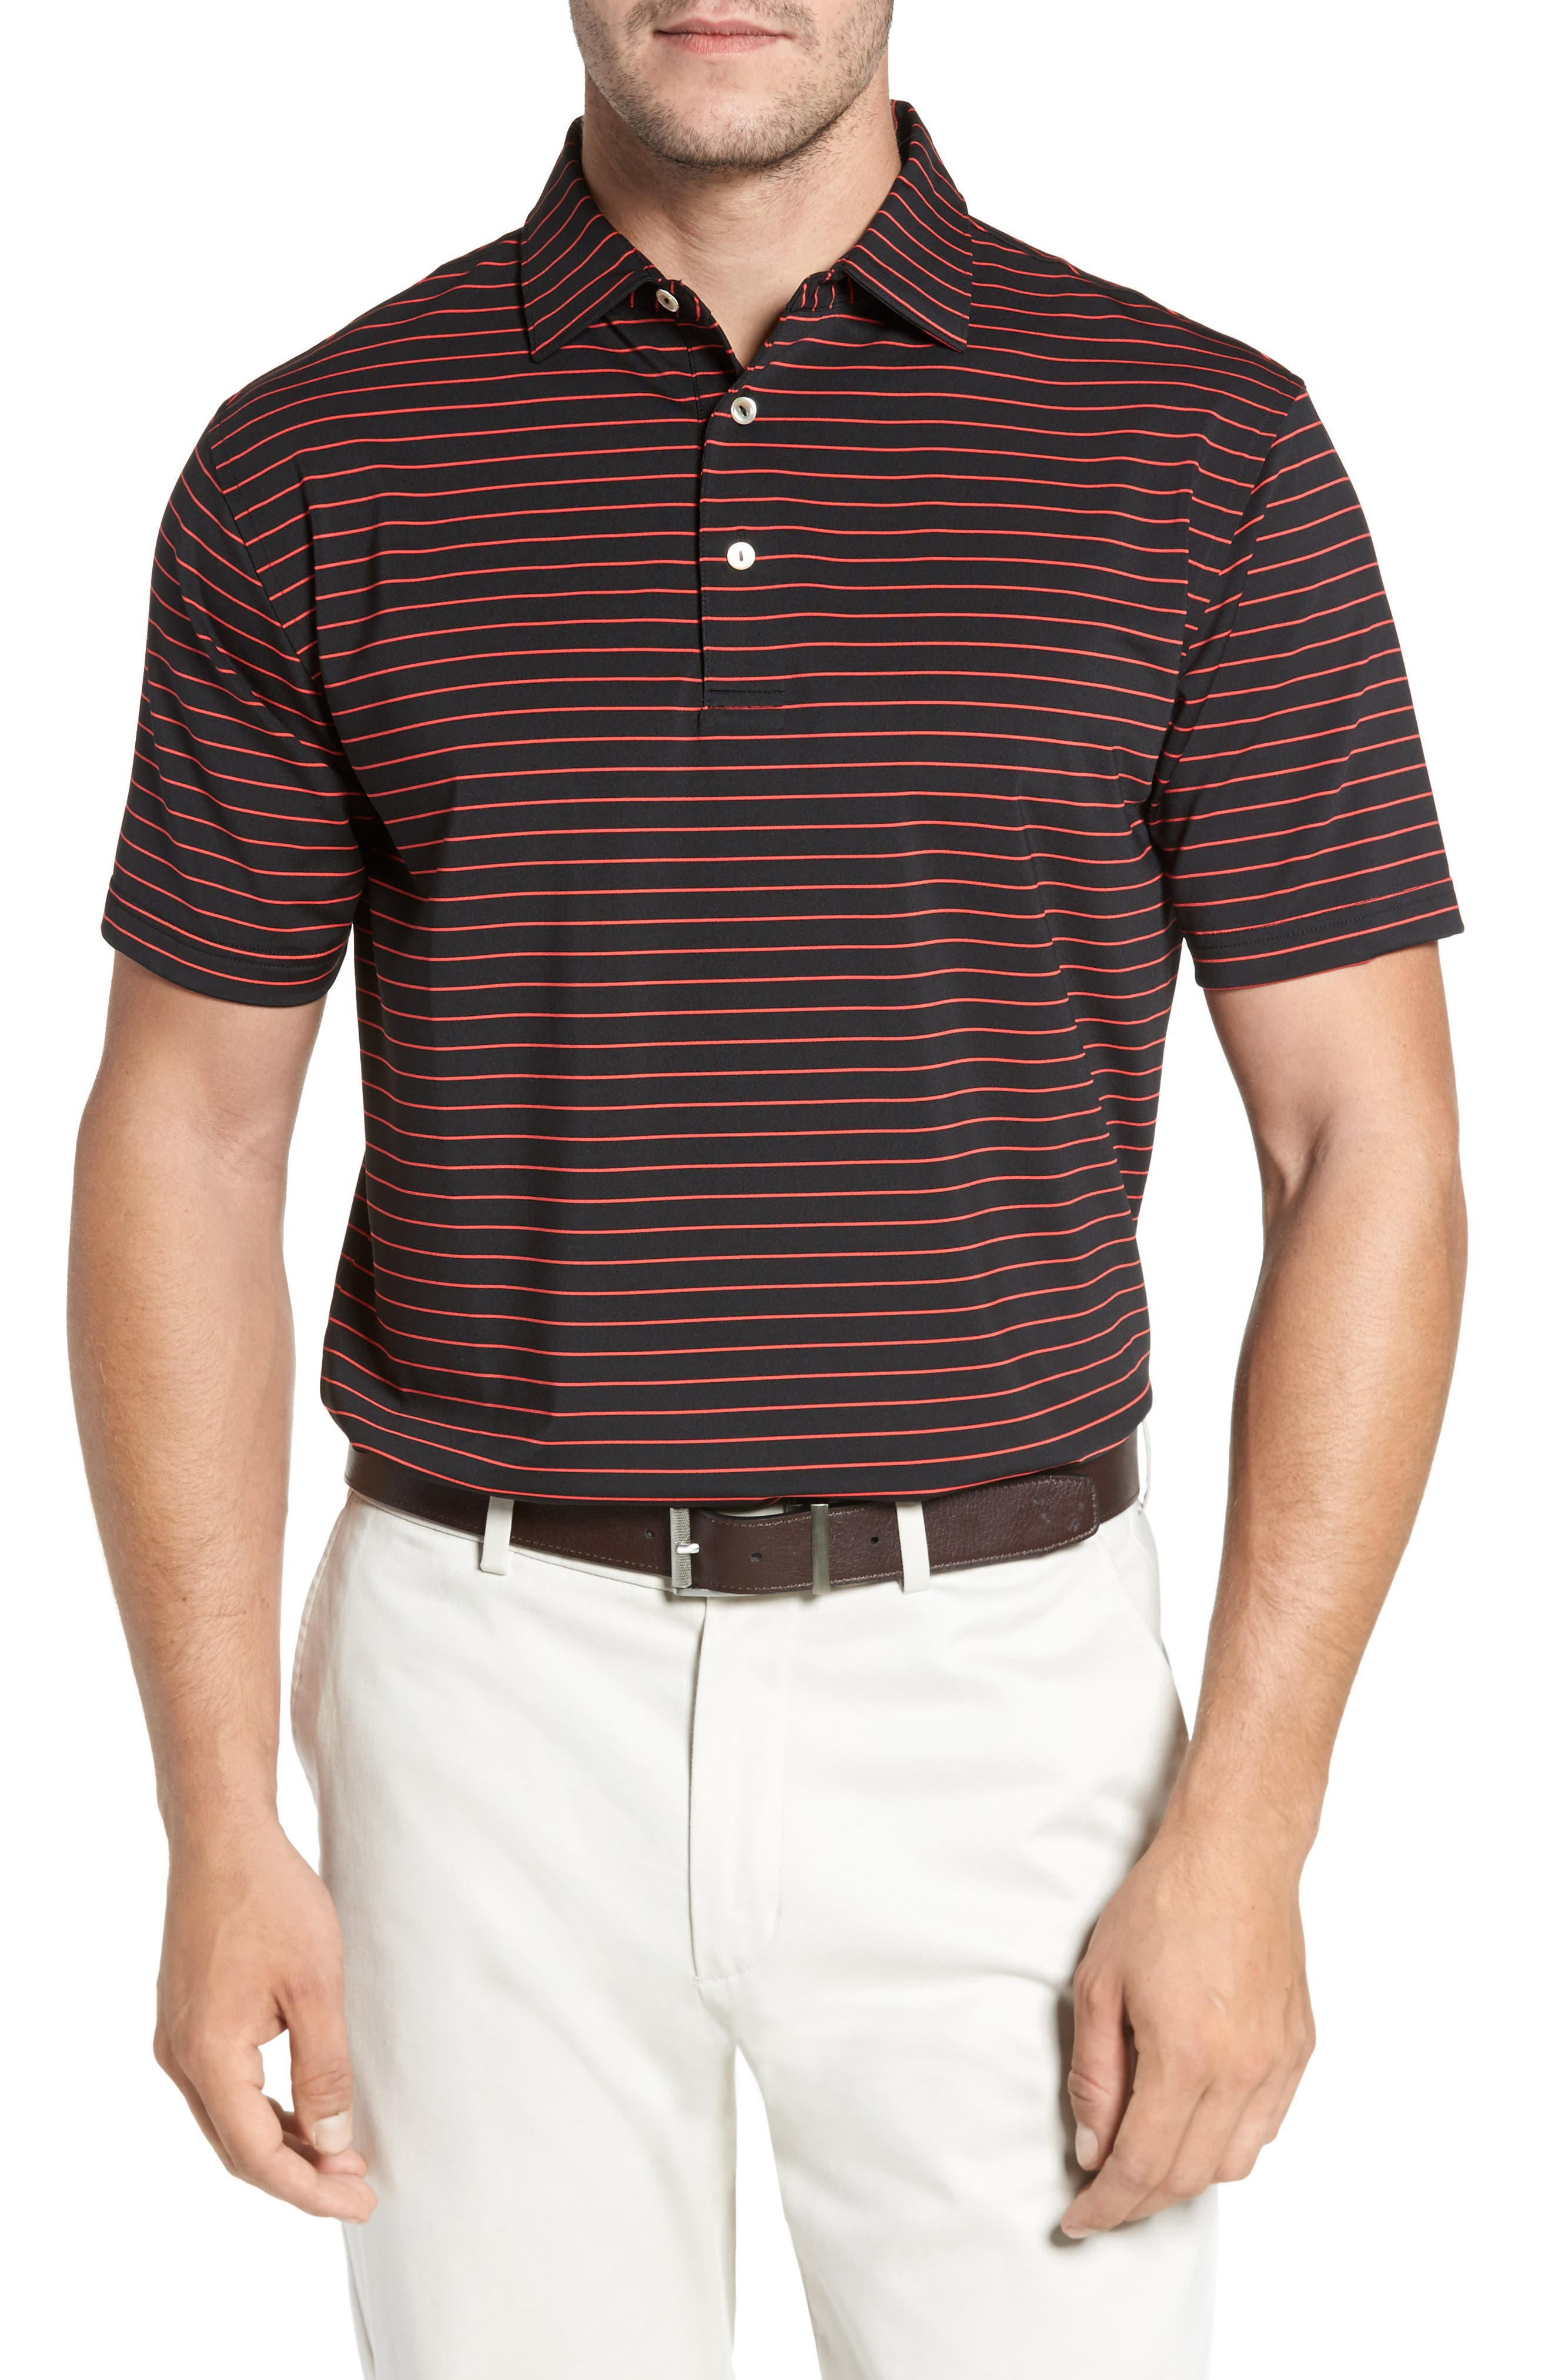 Halifax Pinstripe Stretch Jersey Polo,                         Main,                         color, 001